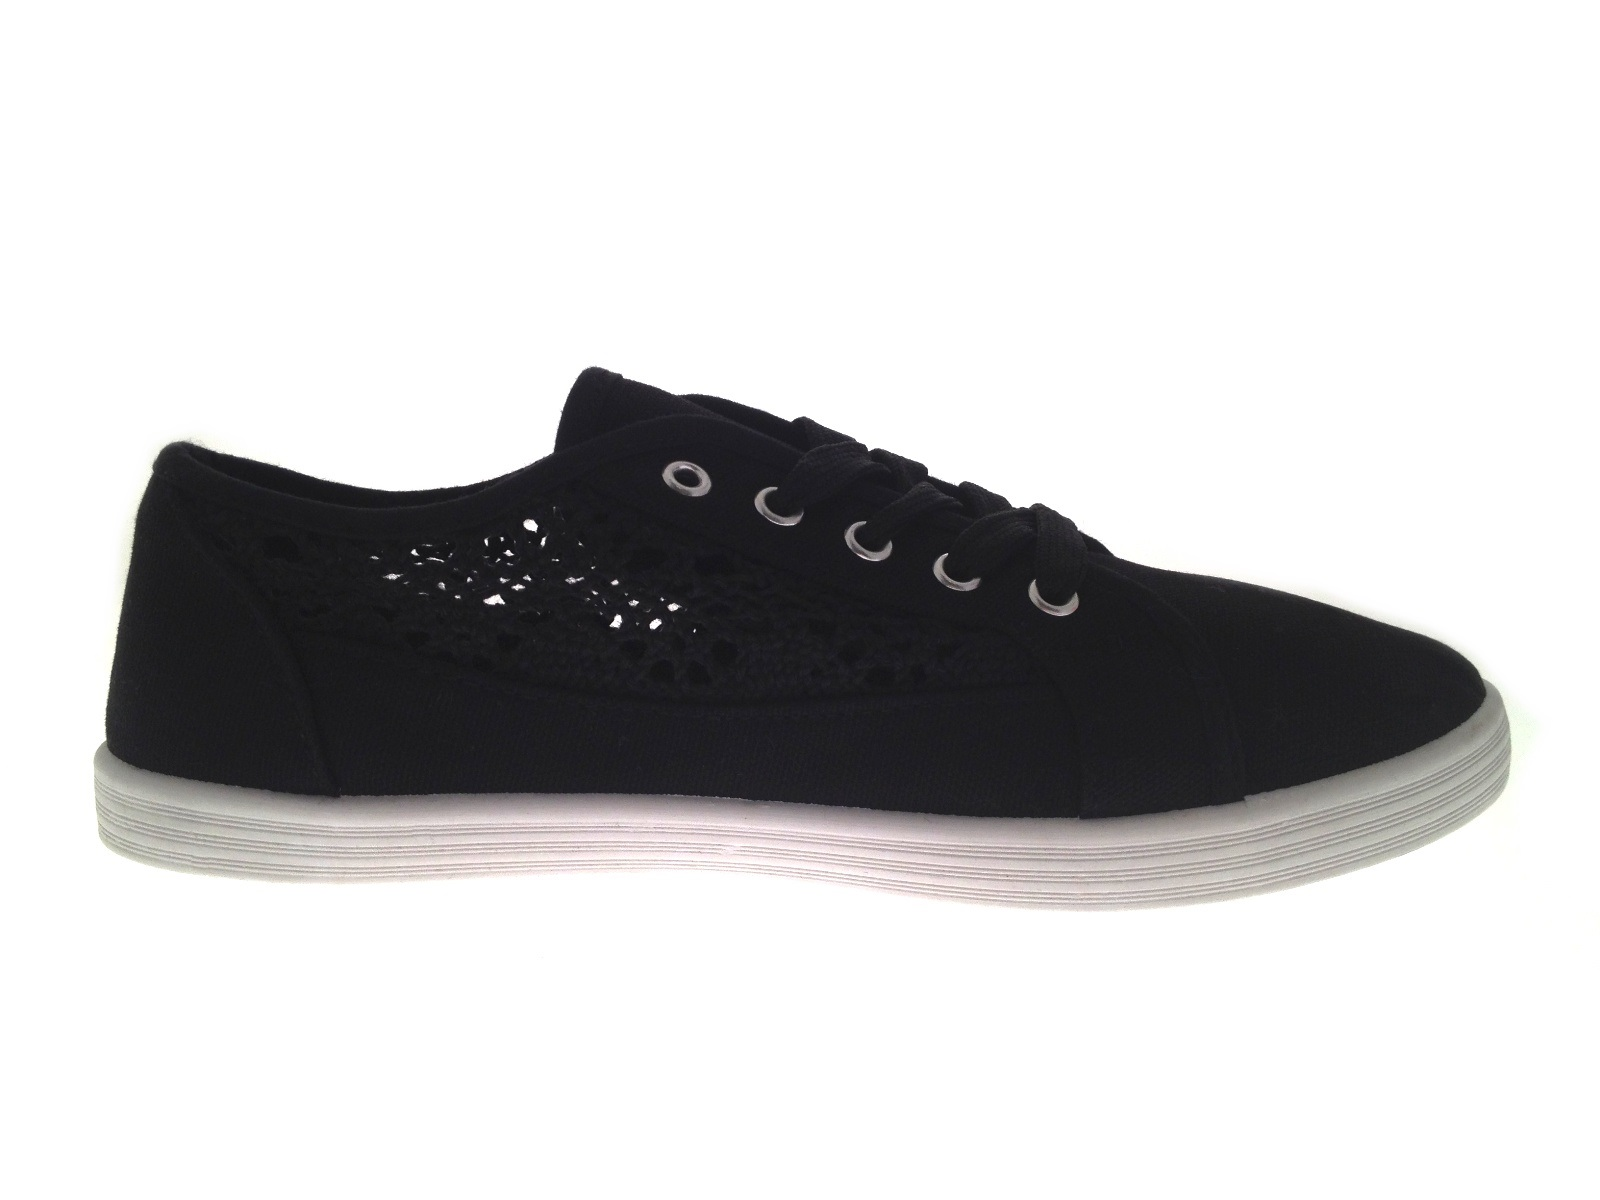 Women's Lace Up Shoes. Discover a new level of comfort and style with our fantastic range of lace-up shoes. The traditional lace-up style provides fantastic foot coverage and a secure fastening. From sumptuous smart brogues to laid-back leisure trainers, we have something for everyone.